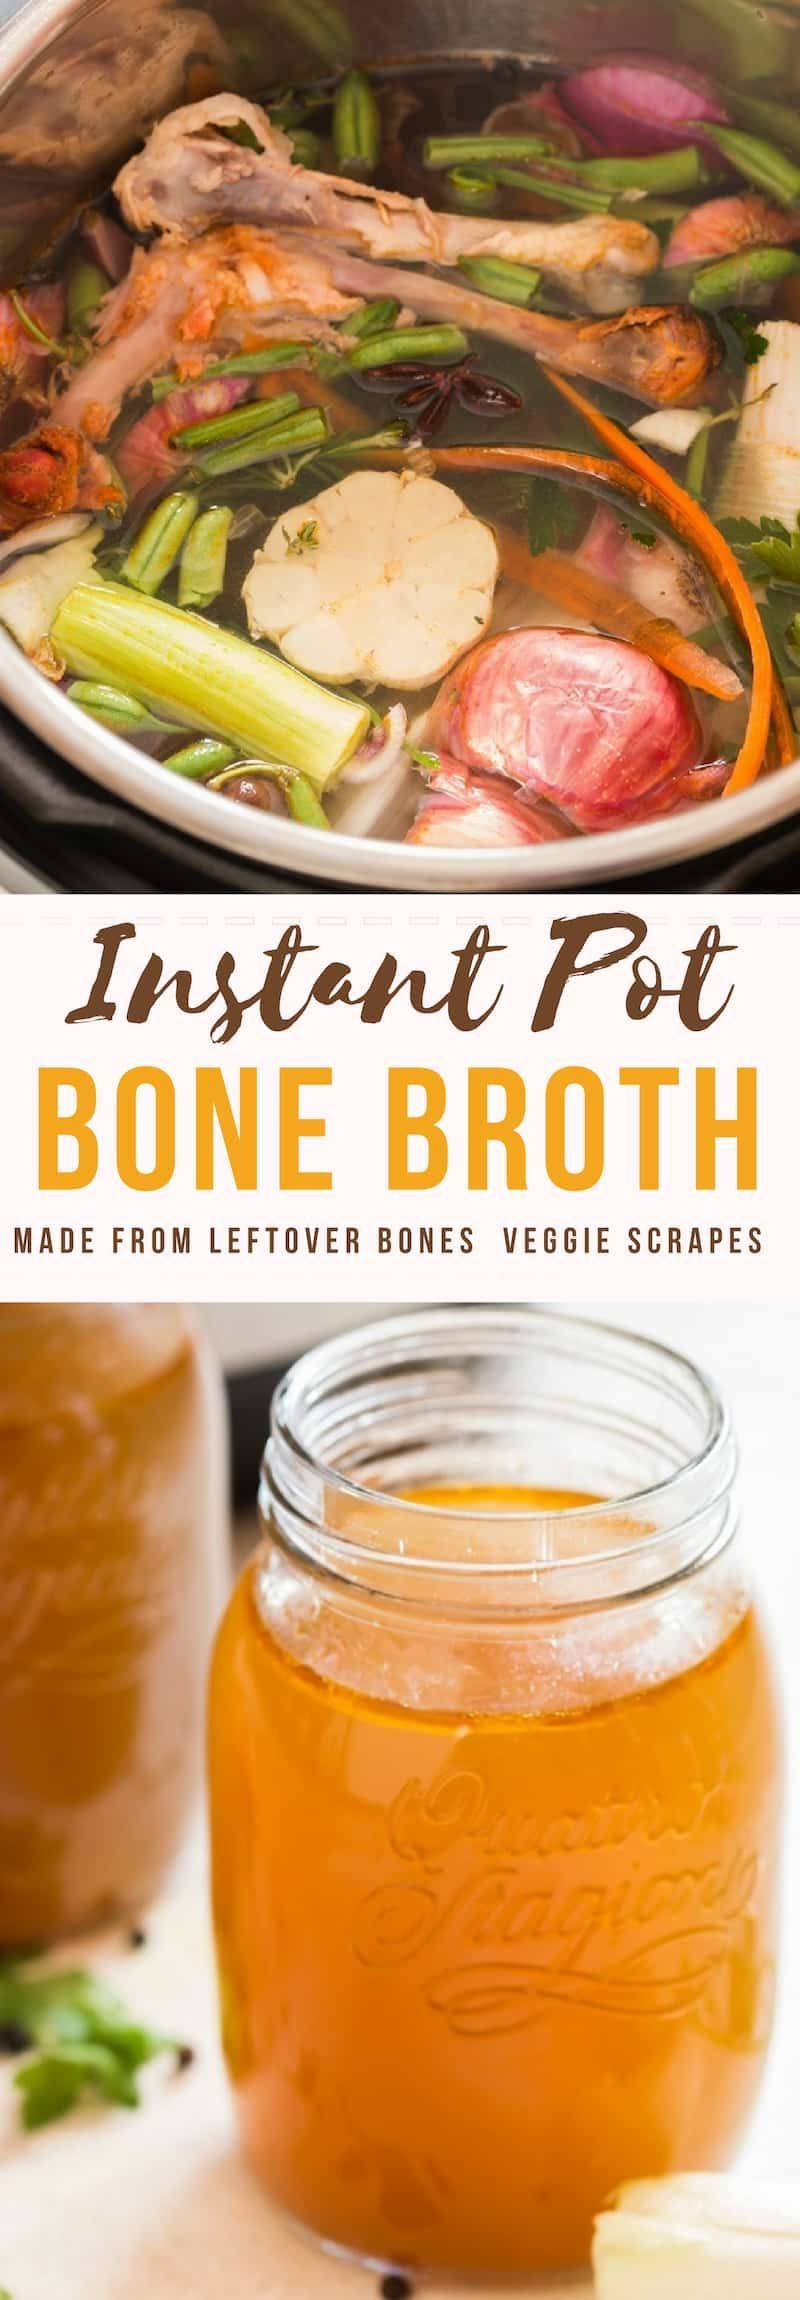 Instant Pot Bone Broth Instant pot bone broth is nutrients enriched stock Slowly simmered for a long time this bone broth recipe uses left over chicken bones and vegetabl...